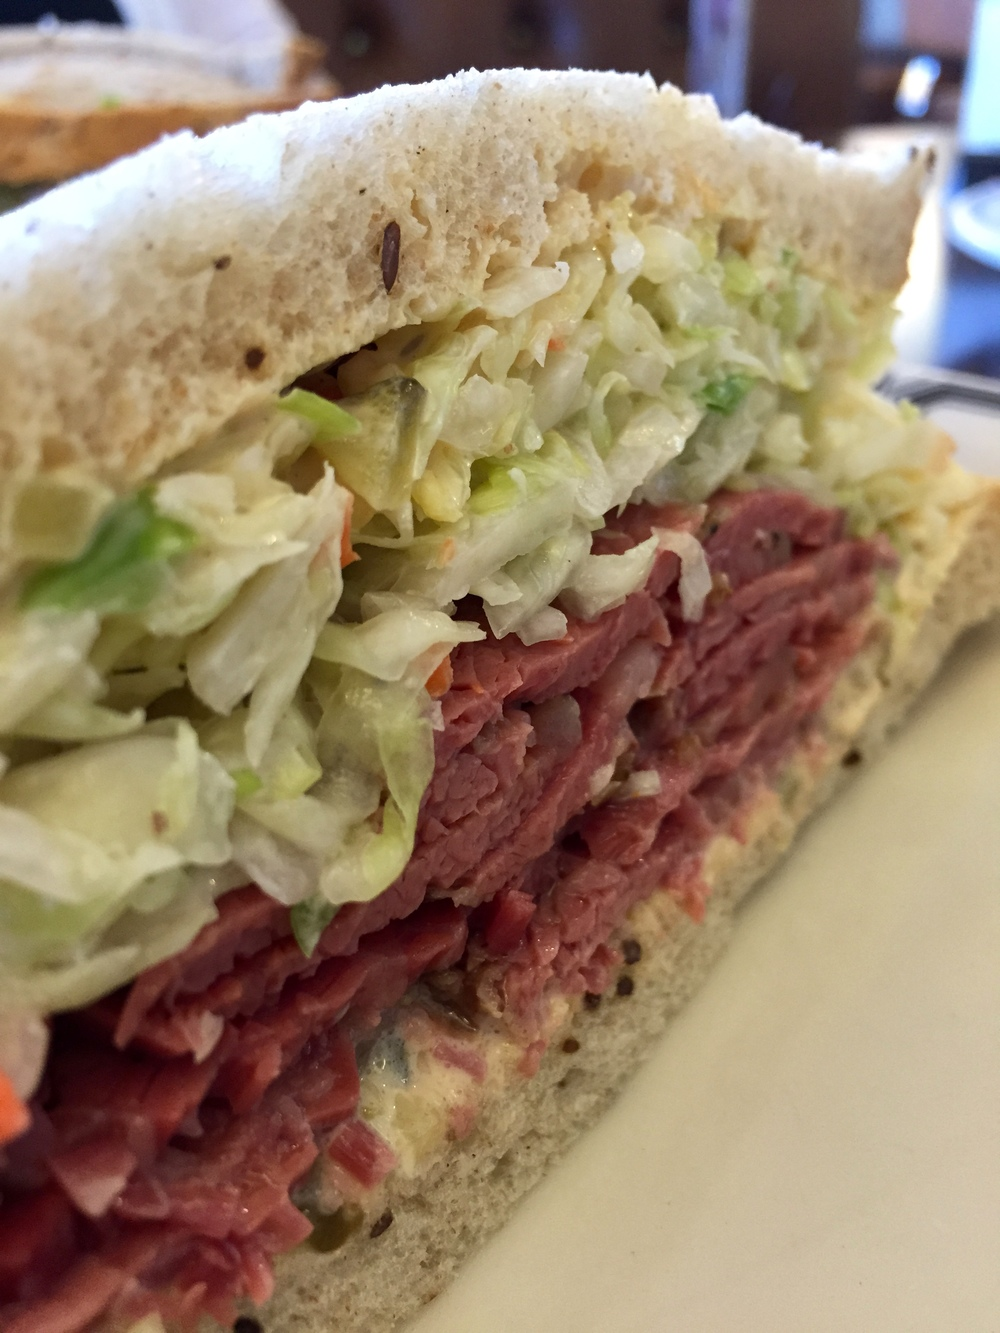 No. 19 Pastrami, Swiss Cheese, and Cole Slaw with Russian Dressing.